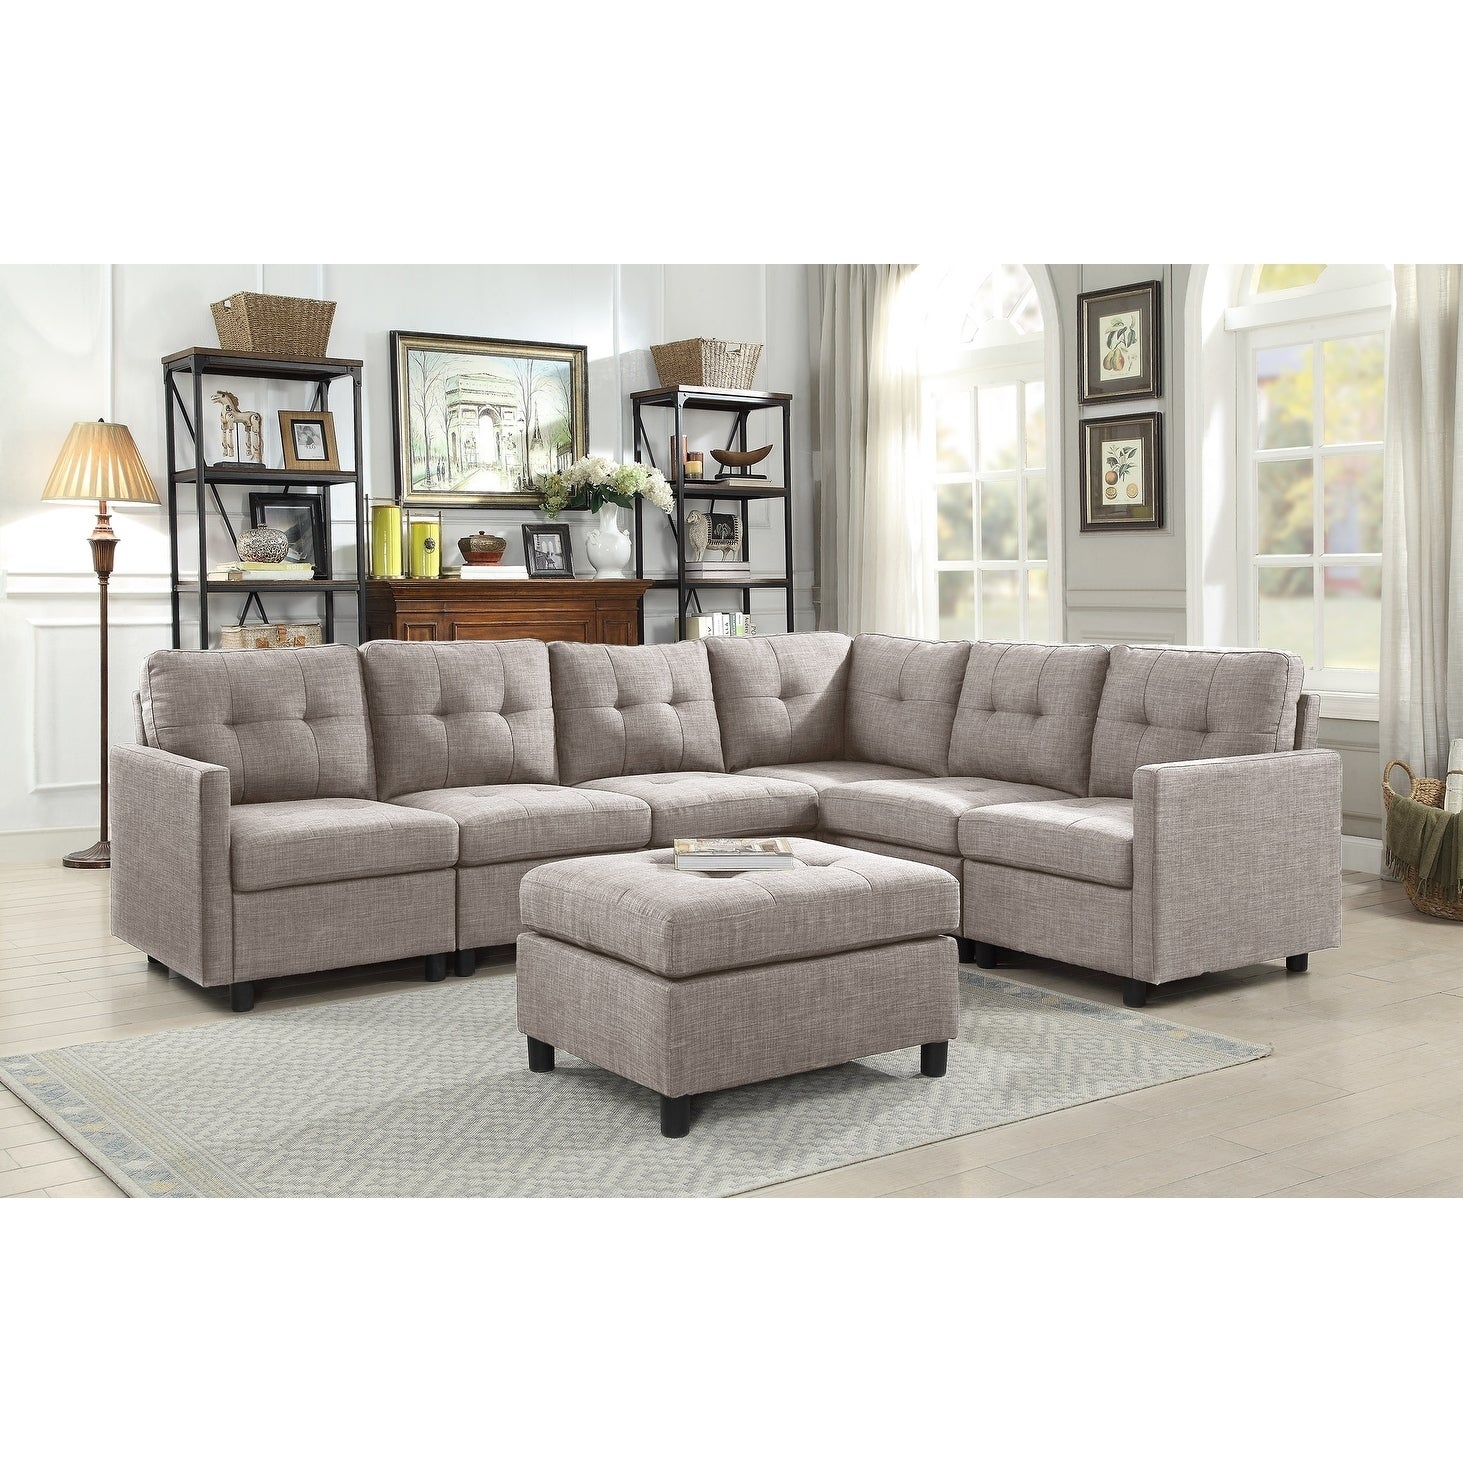 Fine Copper Grove Soden 7 Piece Grey Linen Fabric Modular Sectional Sofa Pabps2019 Chair Design Images Pabps2019Com